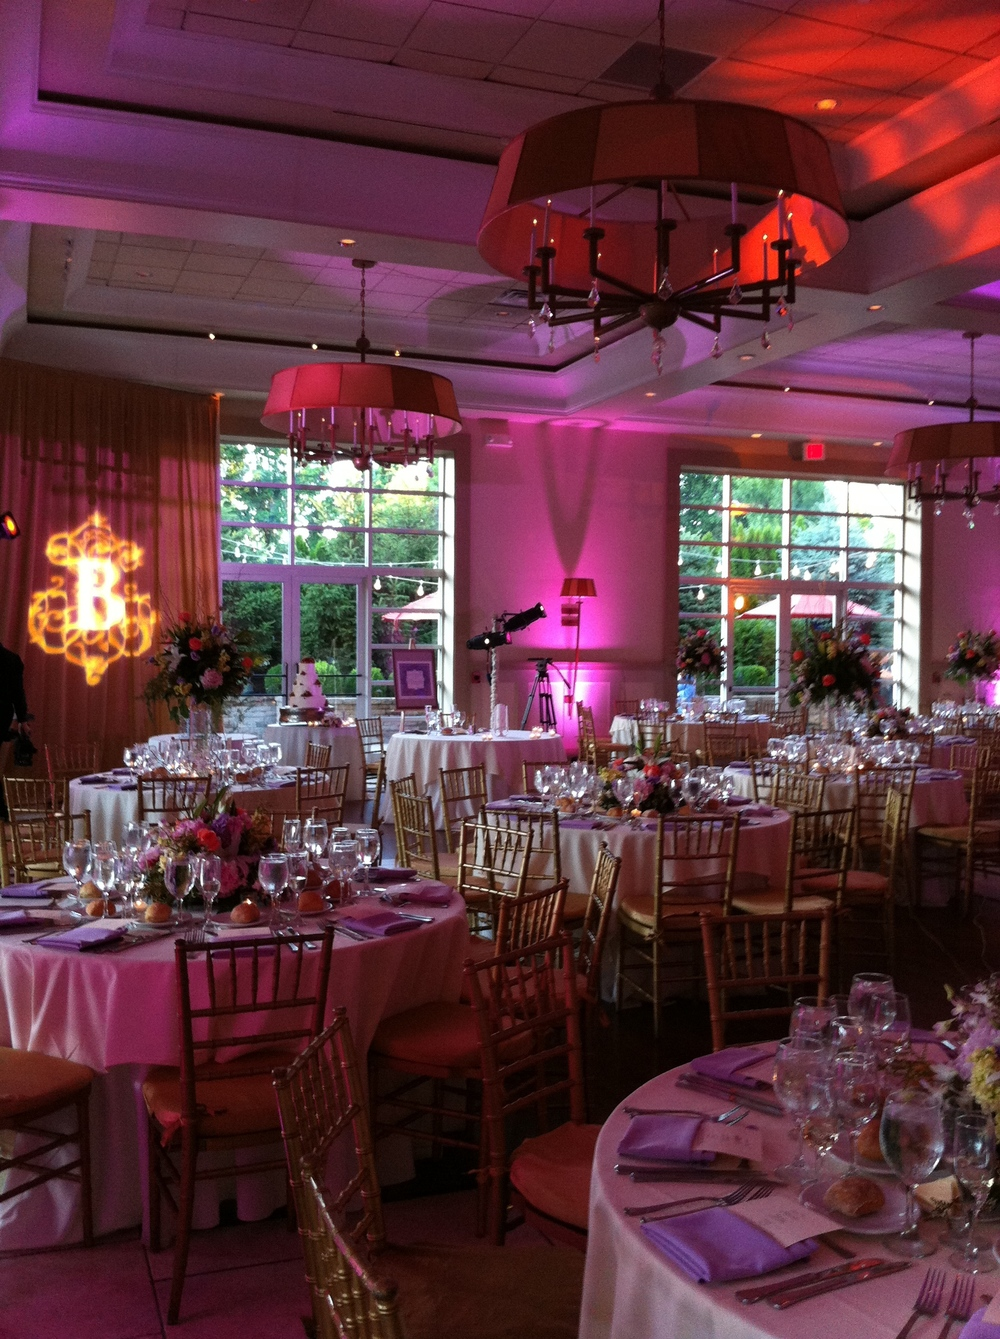 kayneLIVE-NYCWeddingLighting-MonogramBPinkUplights.JPG